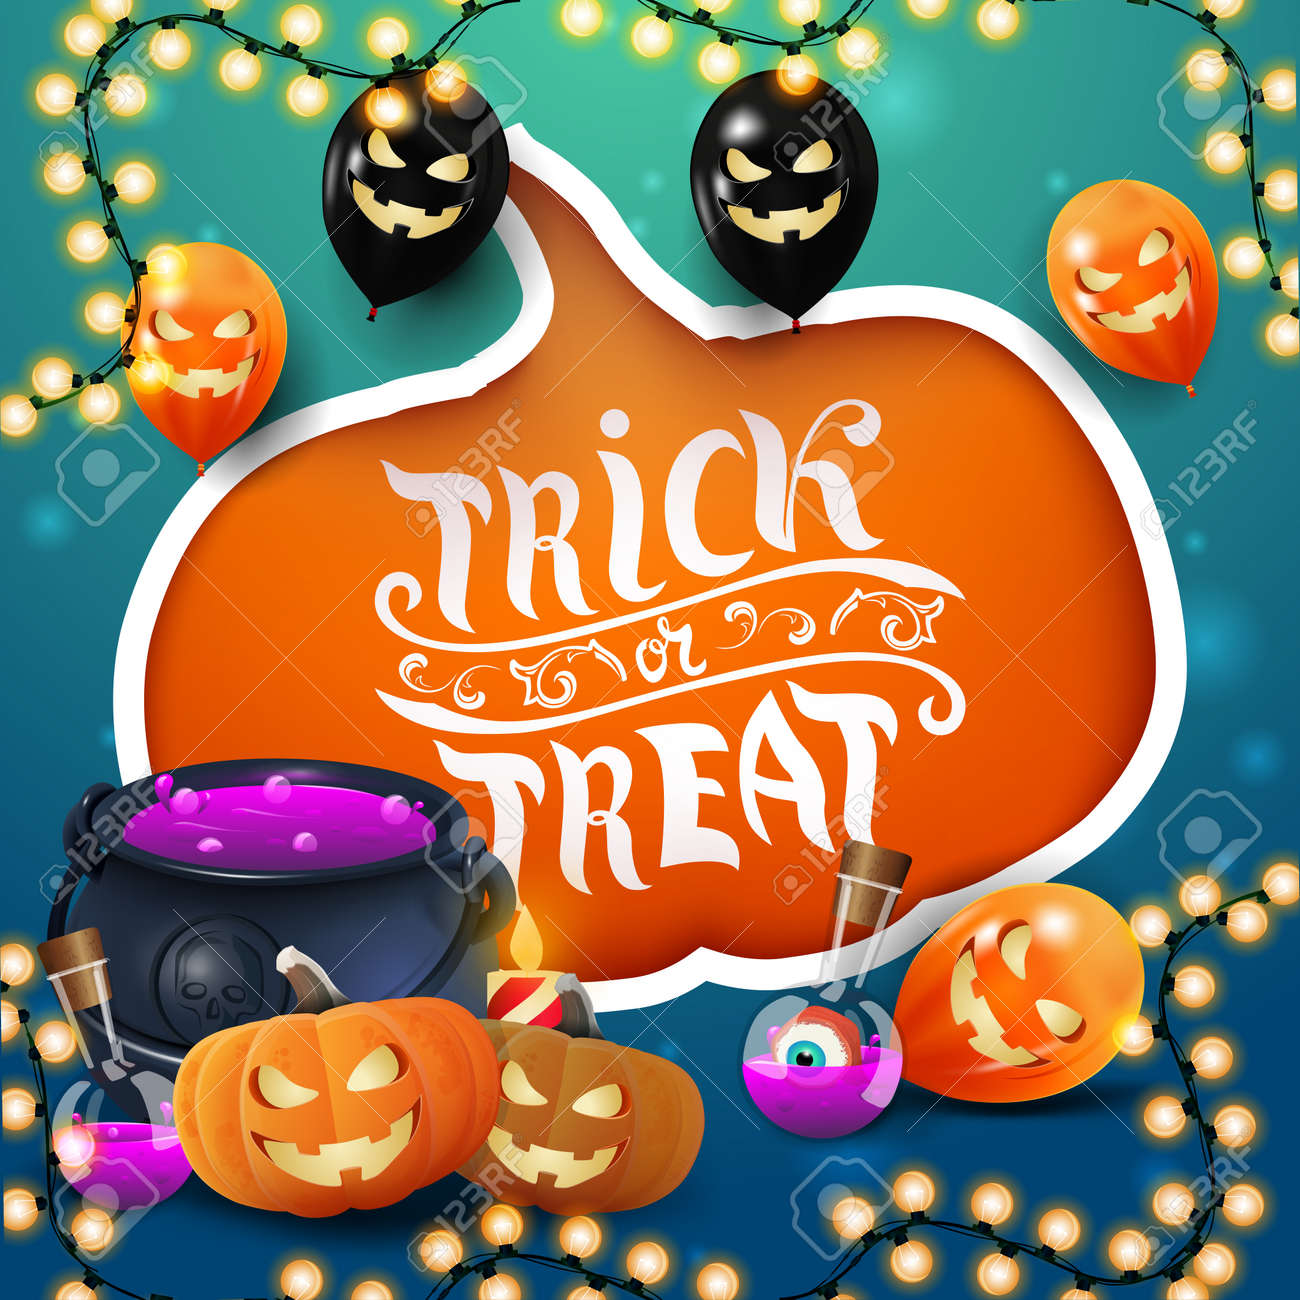 Trick or treat, creative greeting postcard with large cut pumpkin, Halloween balloons, witch's cauldron and pumpkin Jack - 158618727